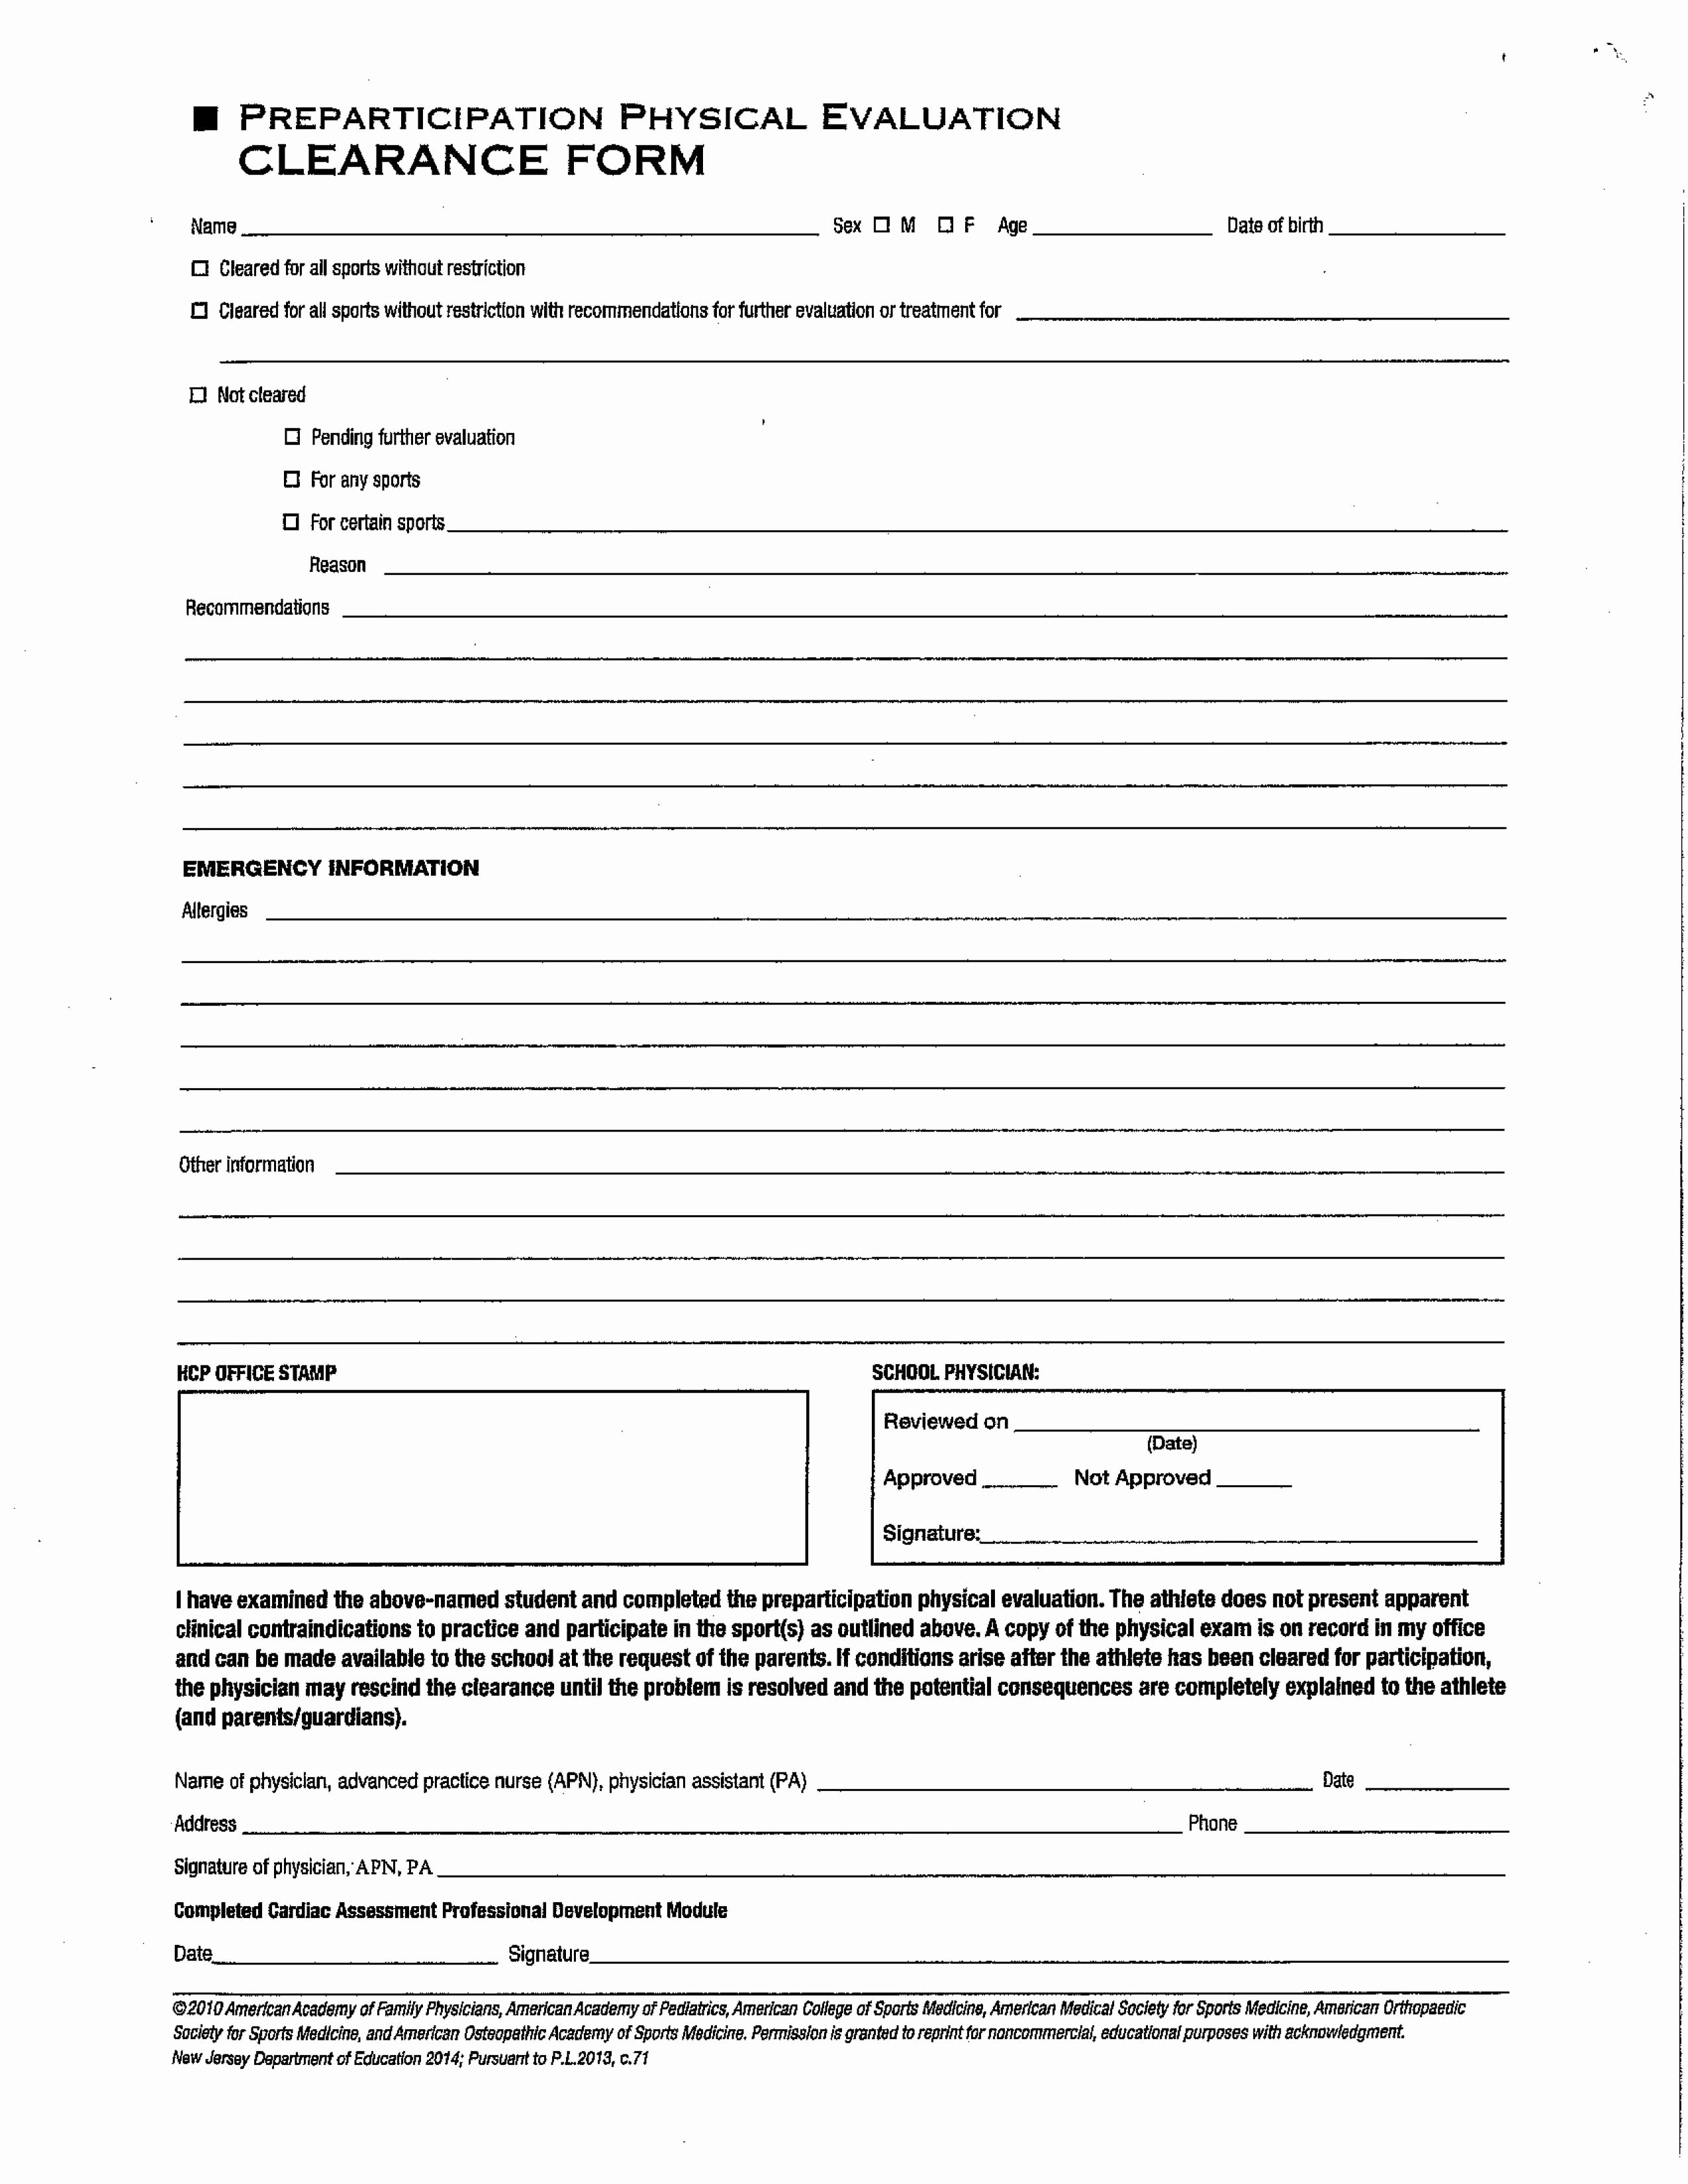 Physical Examination form Template Best Of Clearance and Physical Examination forms – Elysian Charter